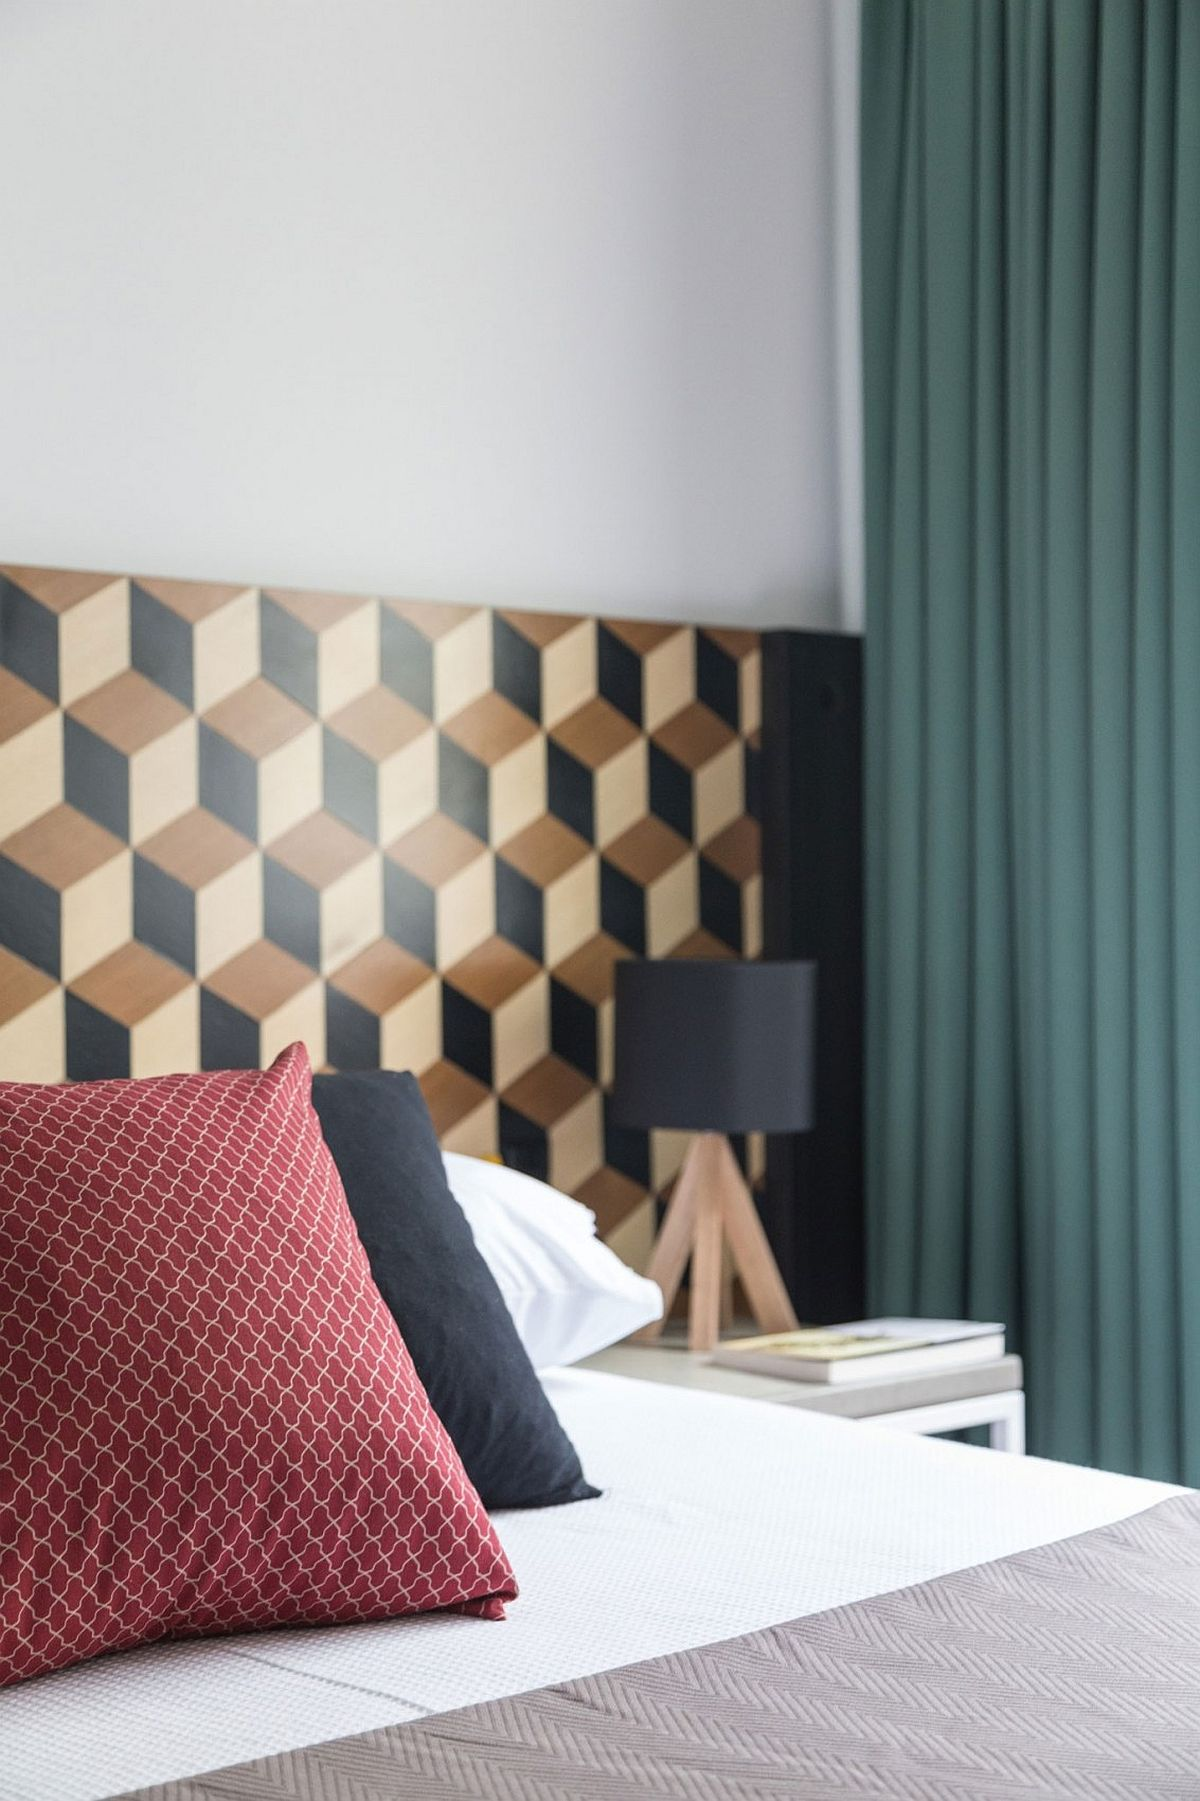 Small bedroom design with geometric wallpaper for the headboard wall